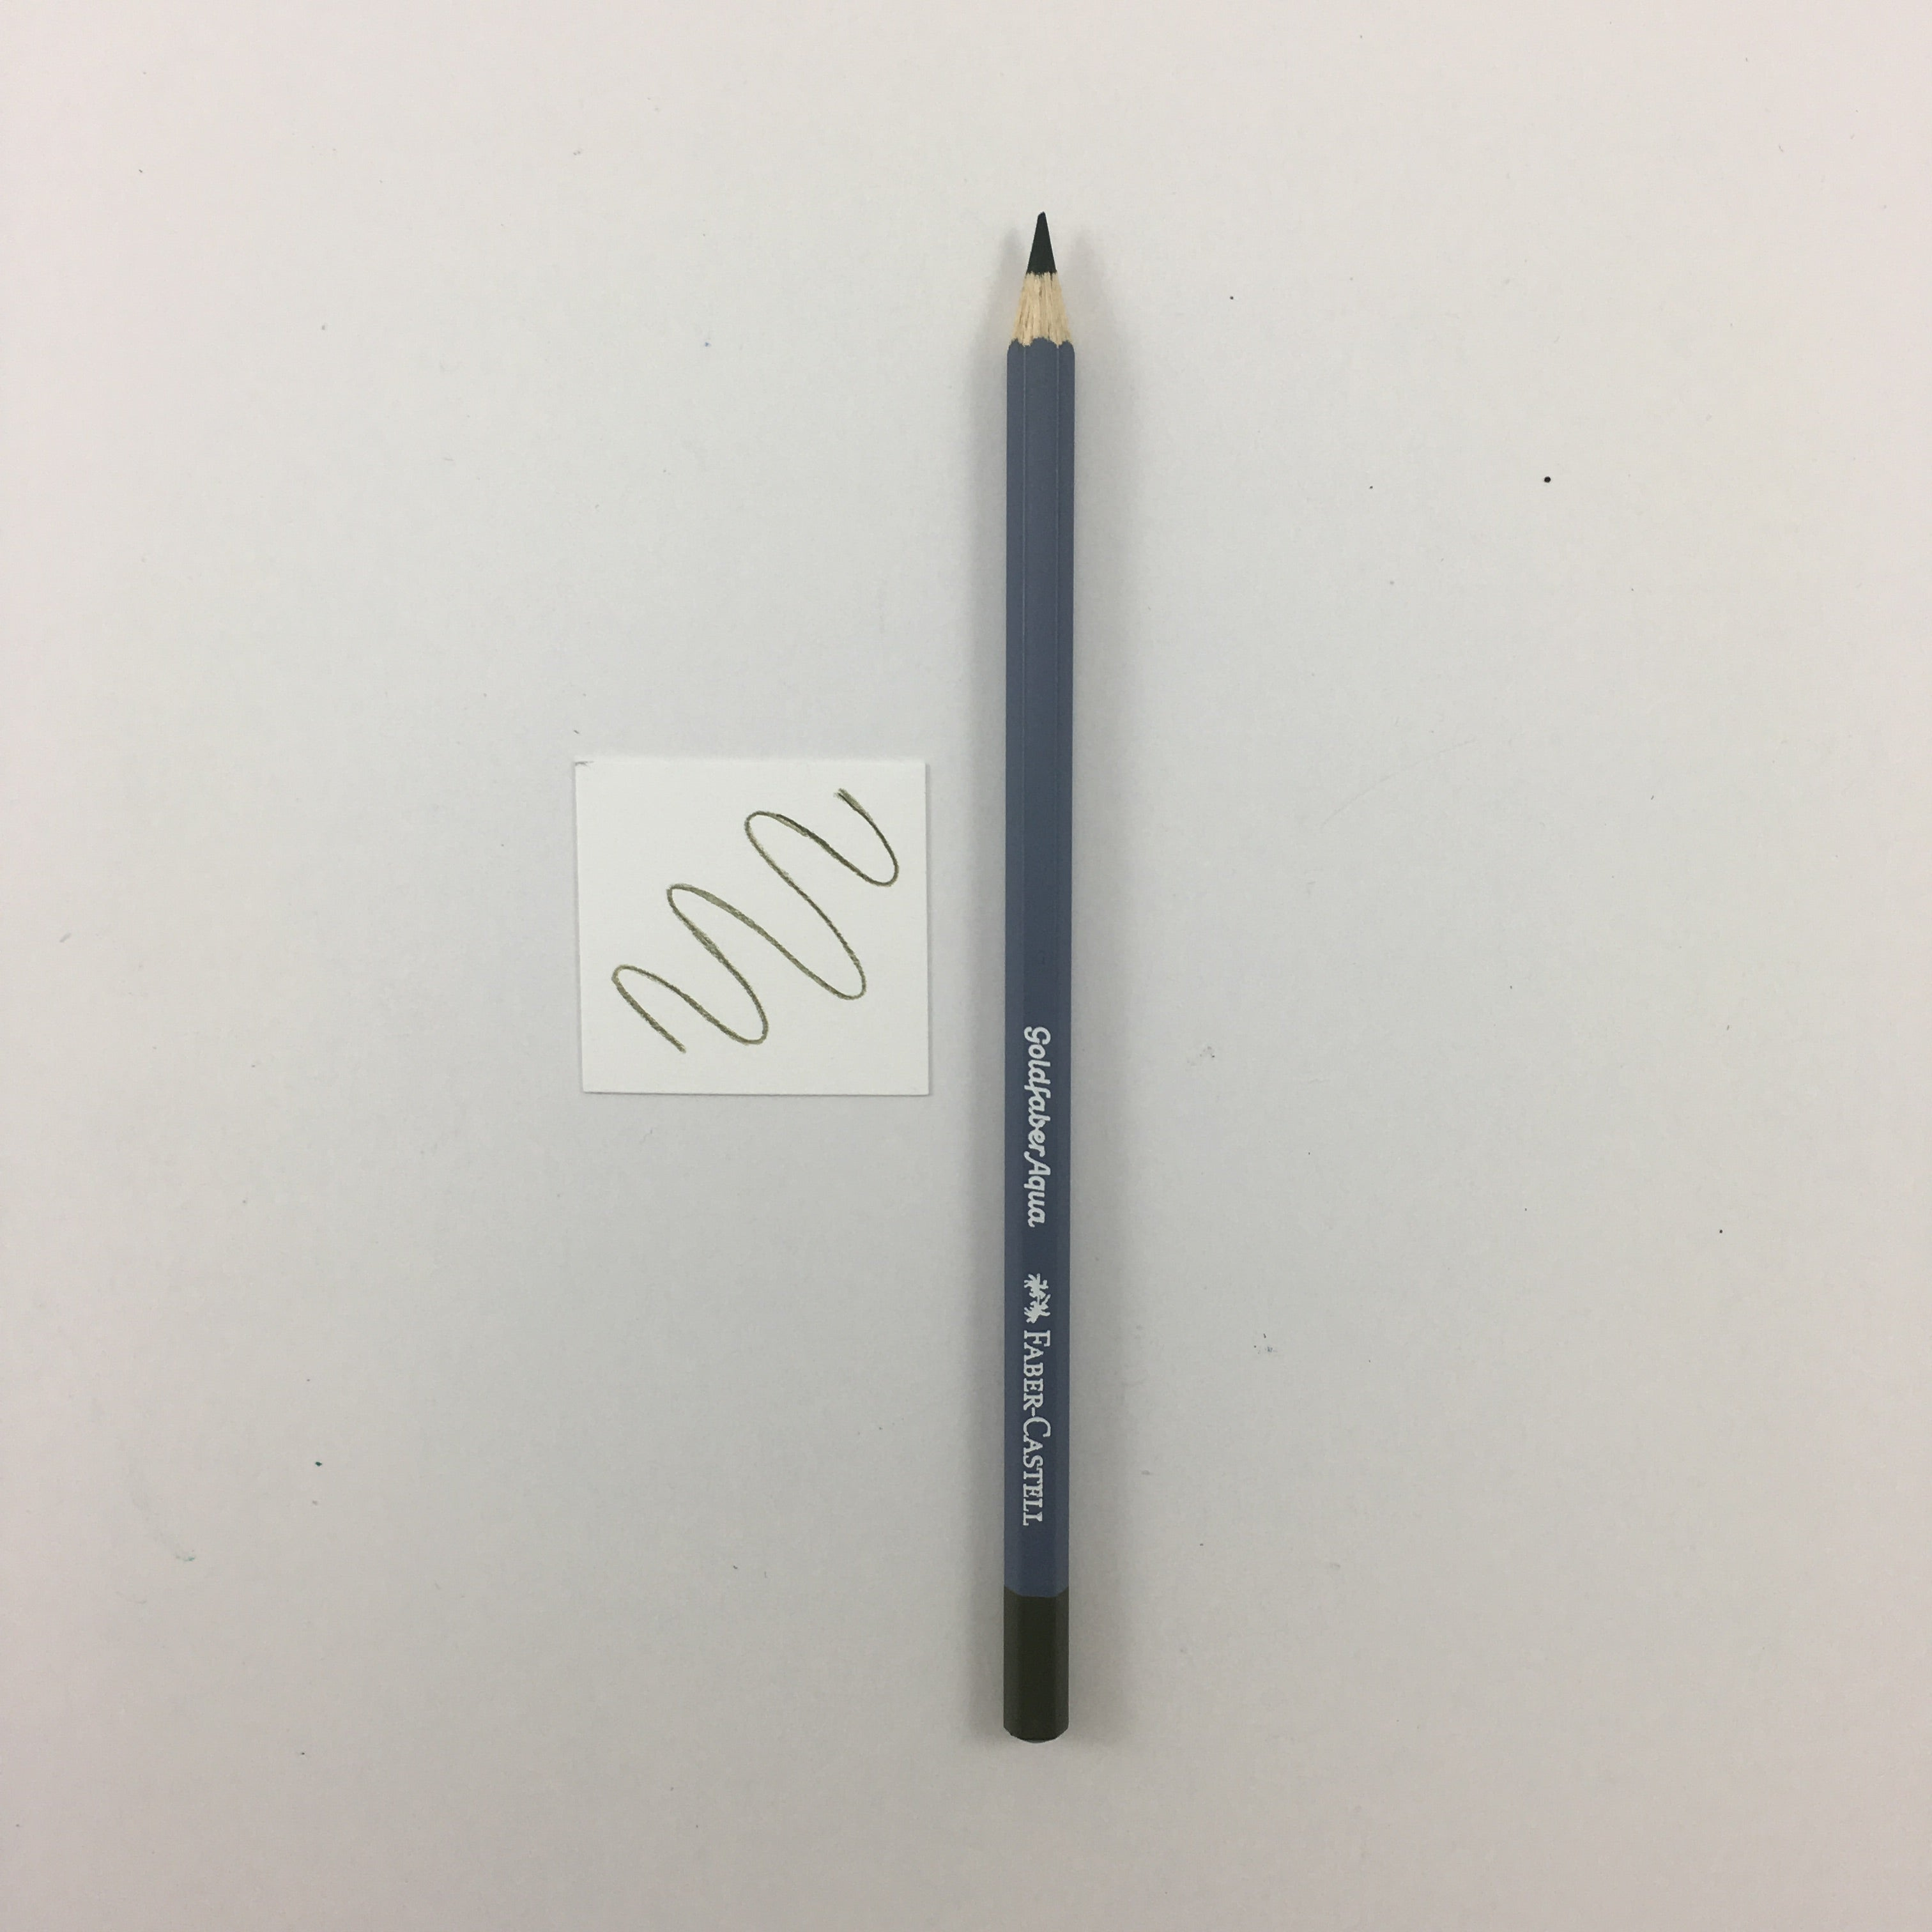 Faber-Castell Goldfaber Aqua Watercolor Pencils - Individuals - 173 - Olive Green Yellowish by Faber-Castell - K. A. Artist Shop